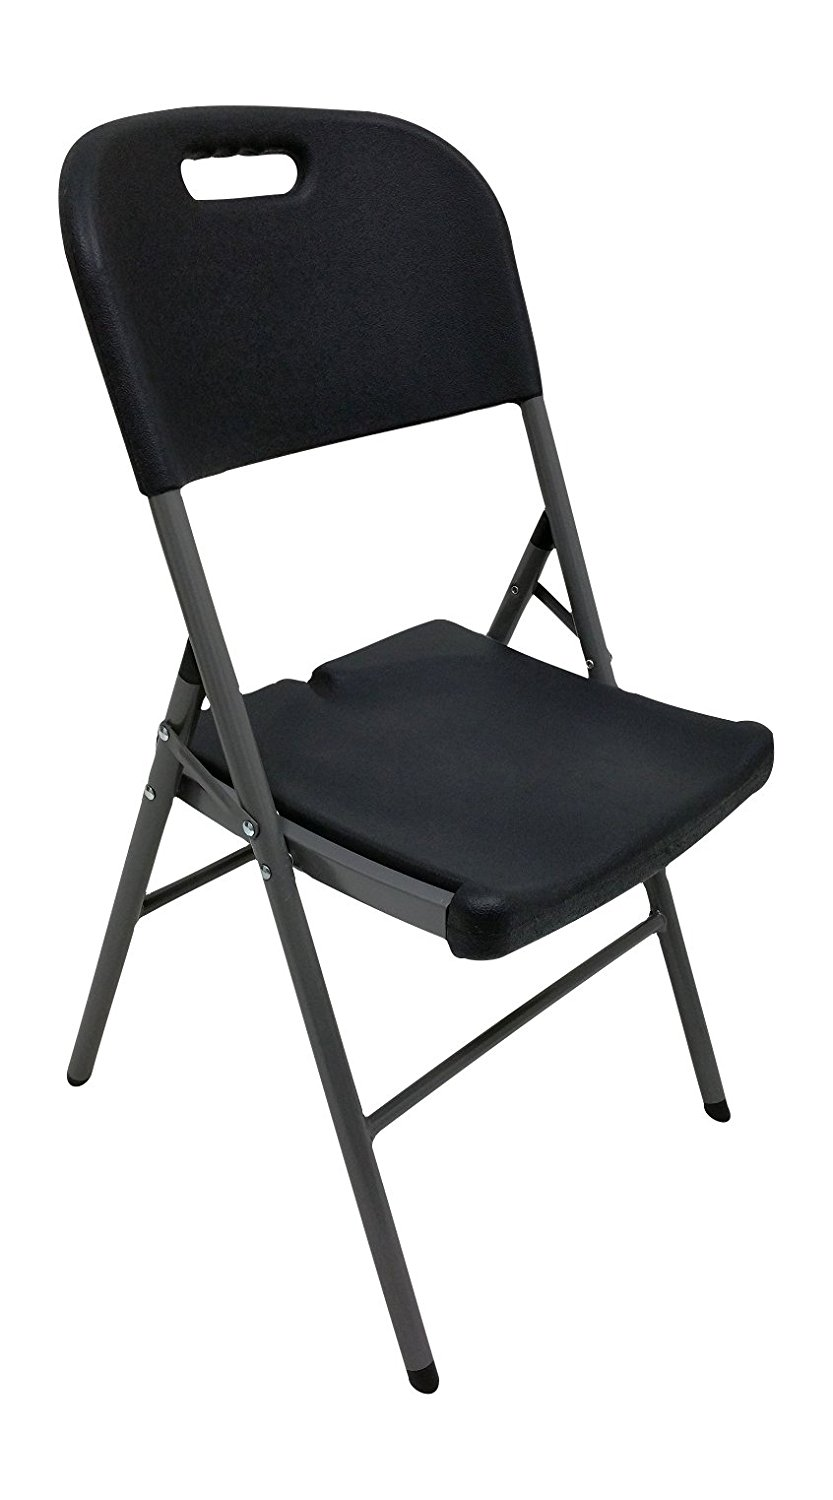 Attractive heavy duty folding chairs extra heavy duty folding chair 440 lbs kzokhmd